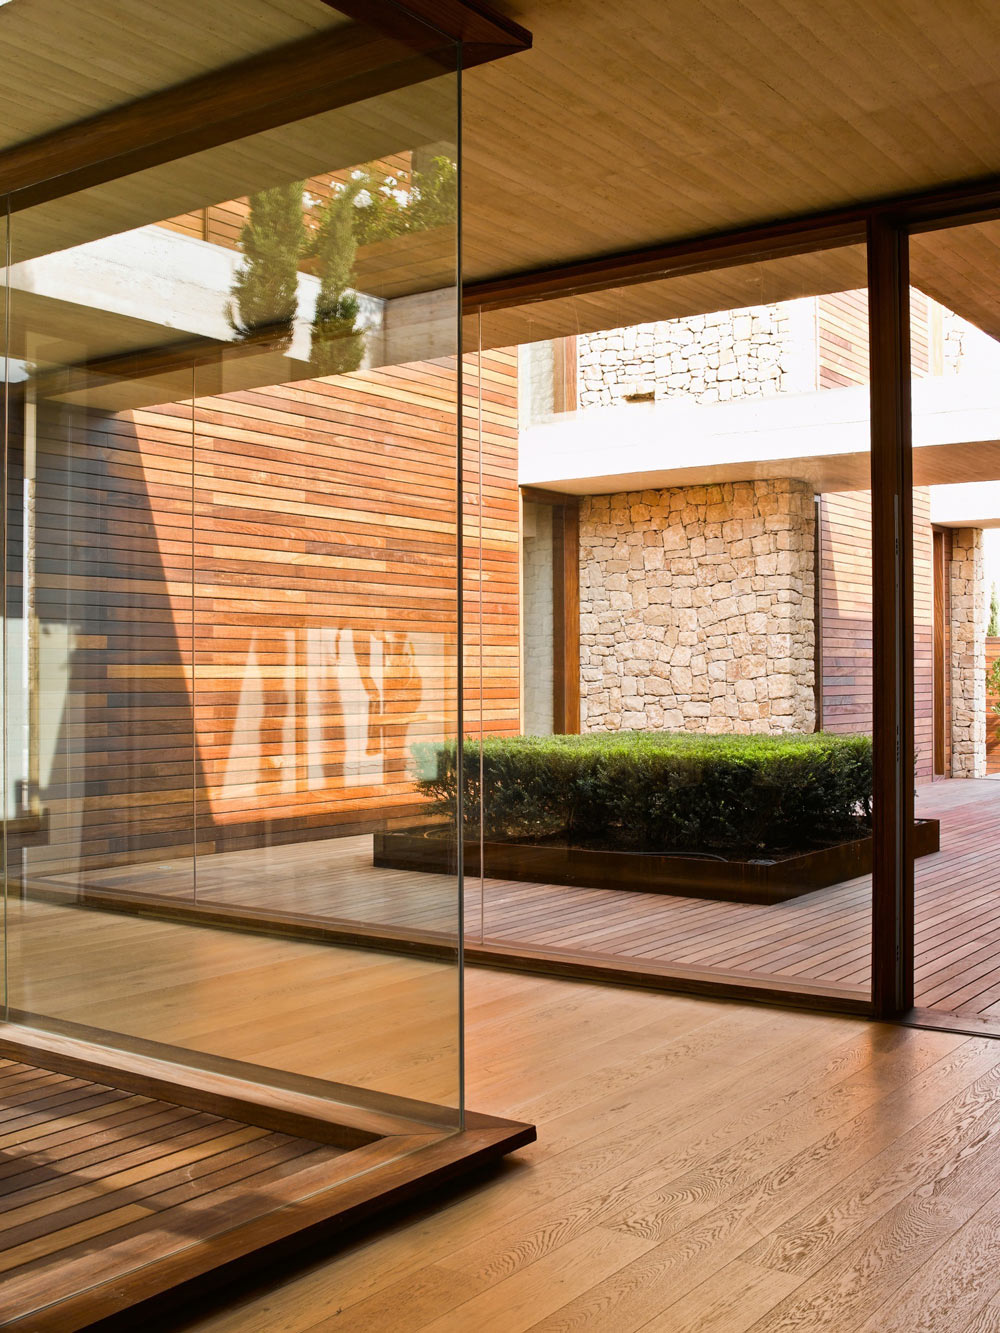 Glass Walls, Wooden Flooring, Contemporary Home in Monasterios, Spain